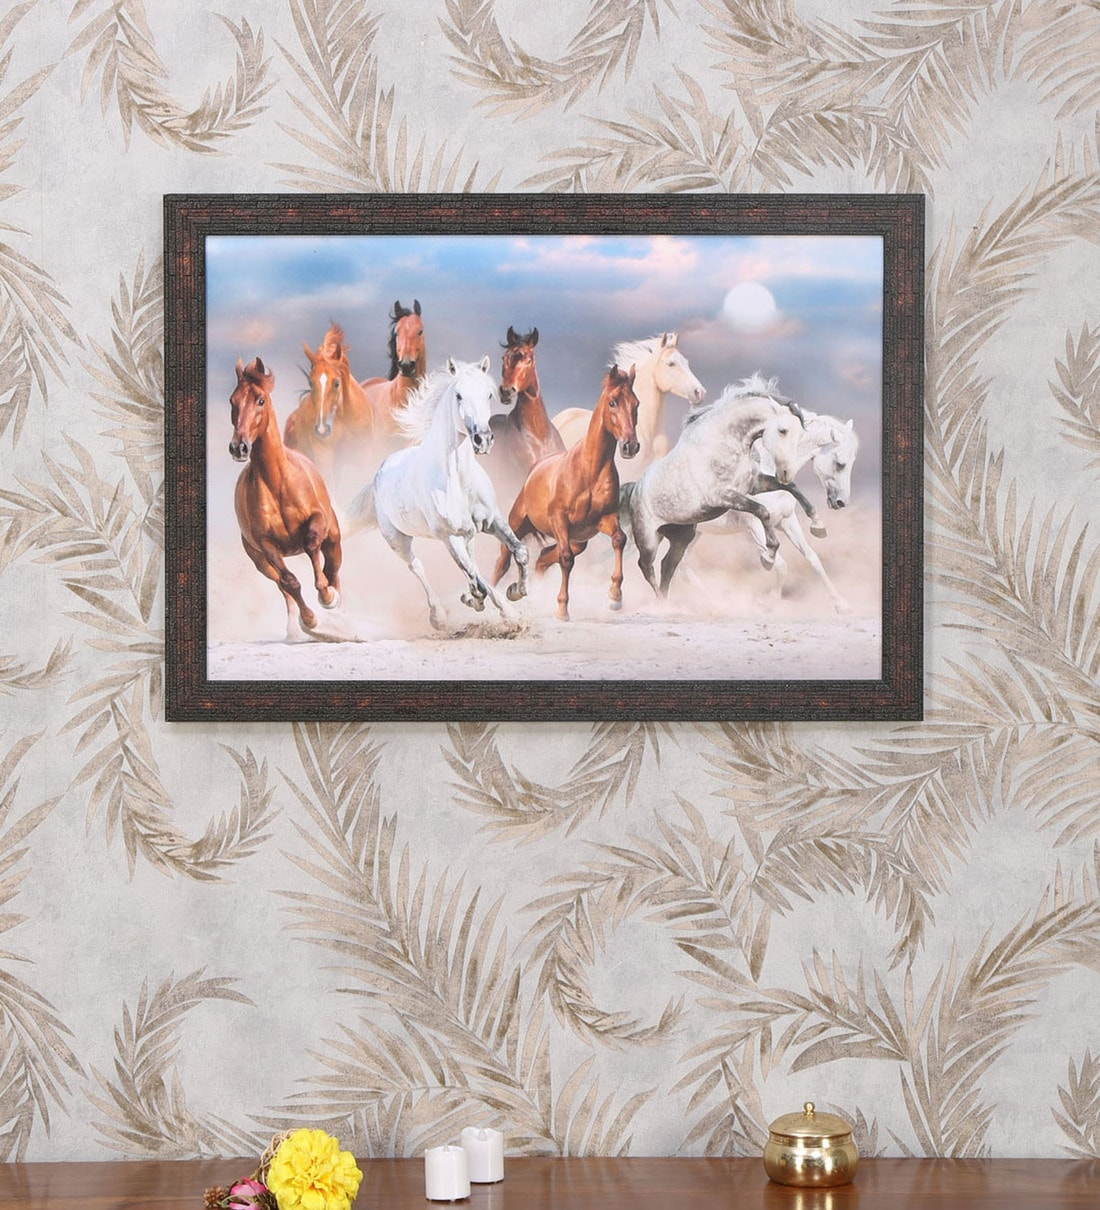 Buy Multicolor Mdf Running Horses Painting By Home Online Wildlife Art Prints Art Prints Home Decor Pepperfry Product